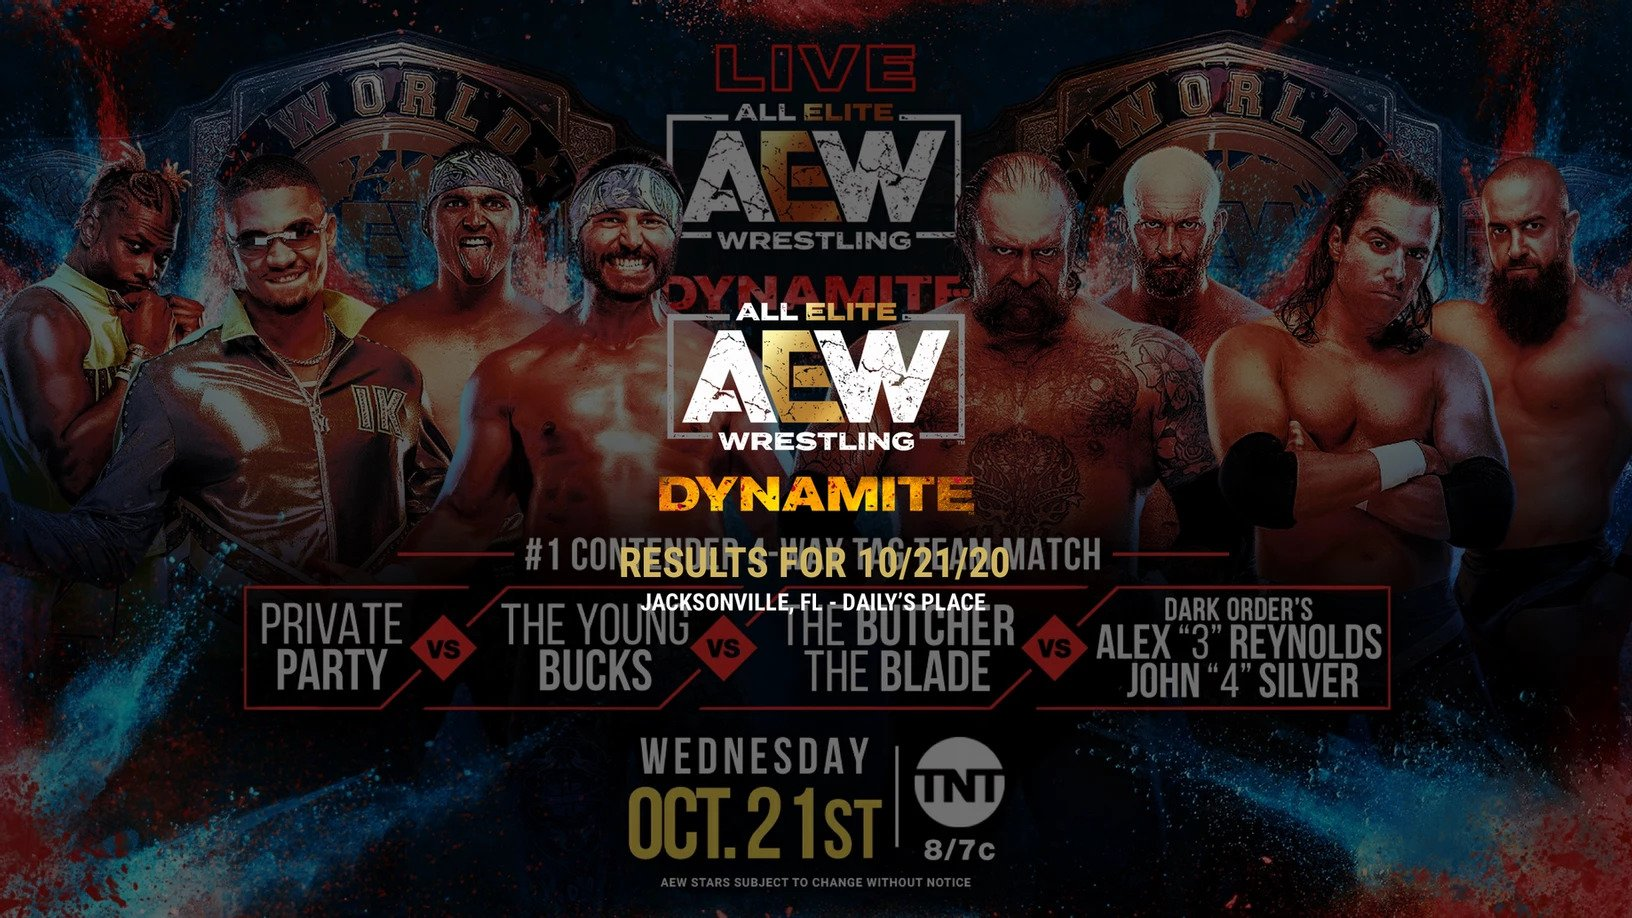 October 21, 2020 AEW Dynamite results